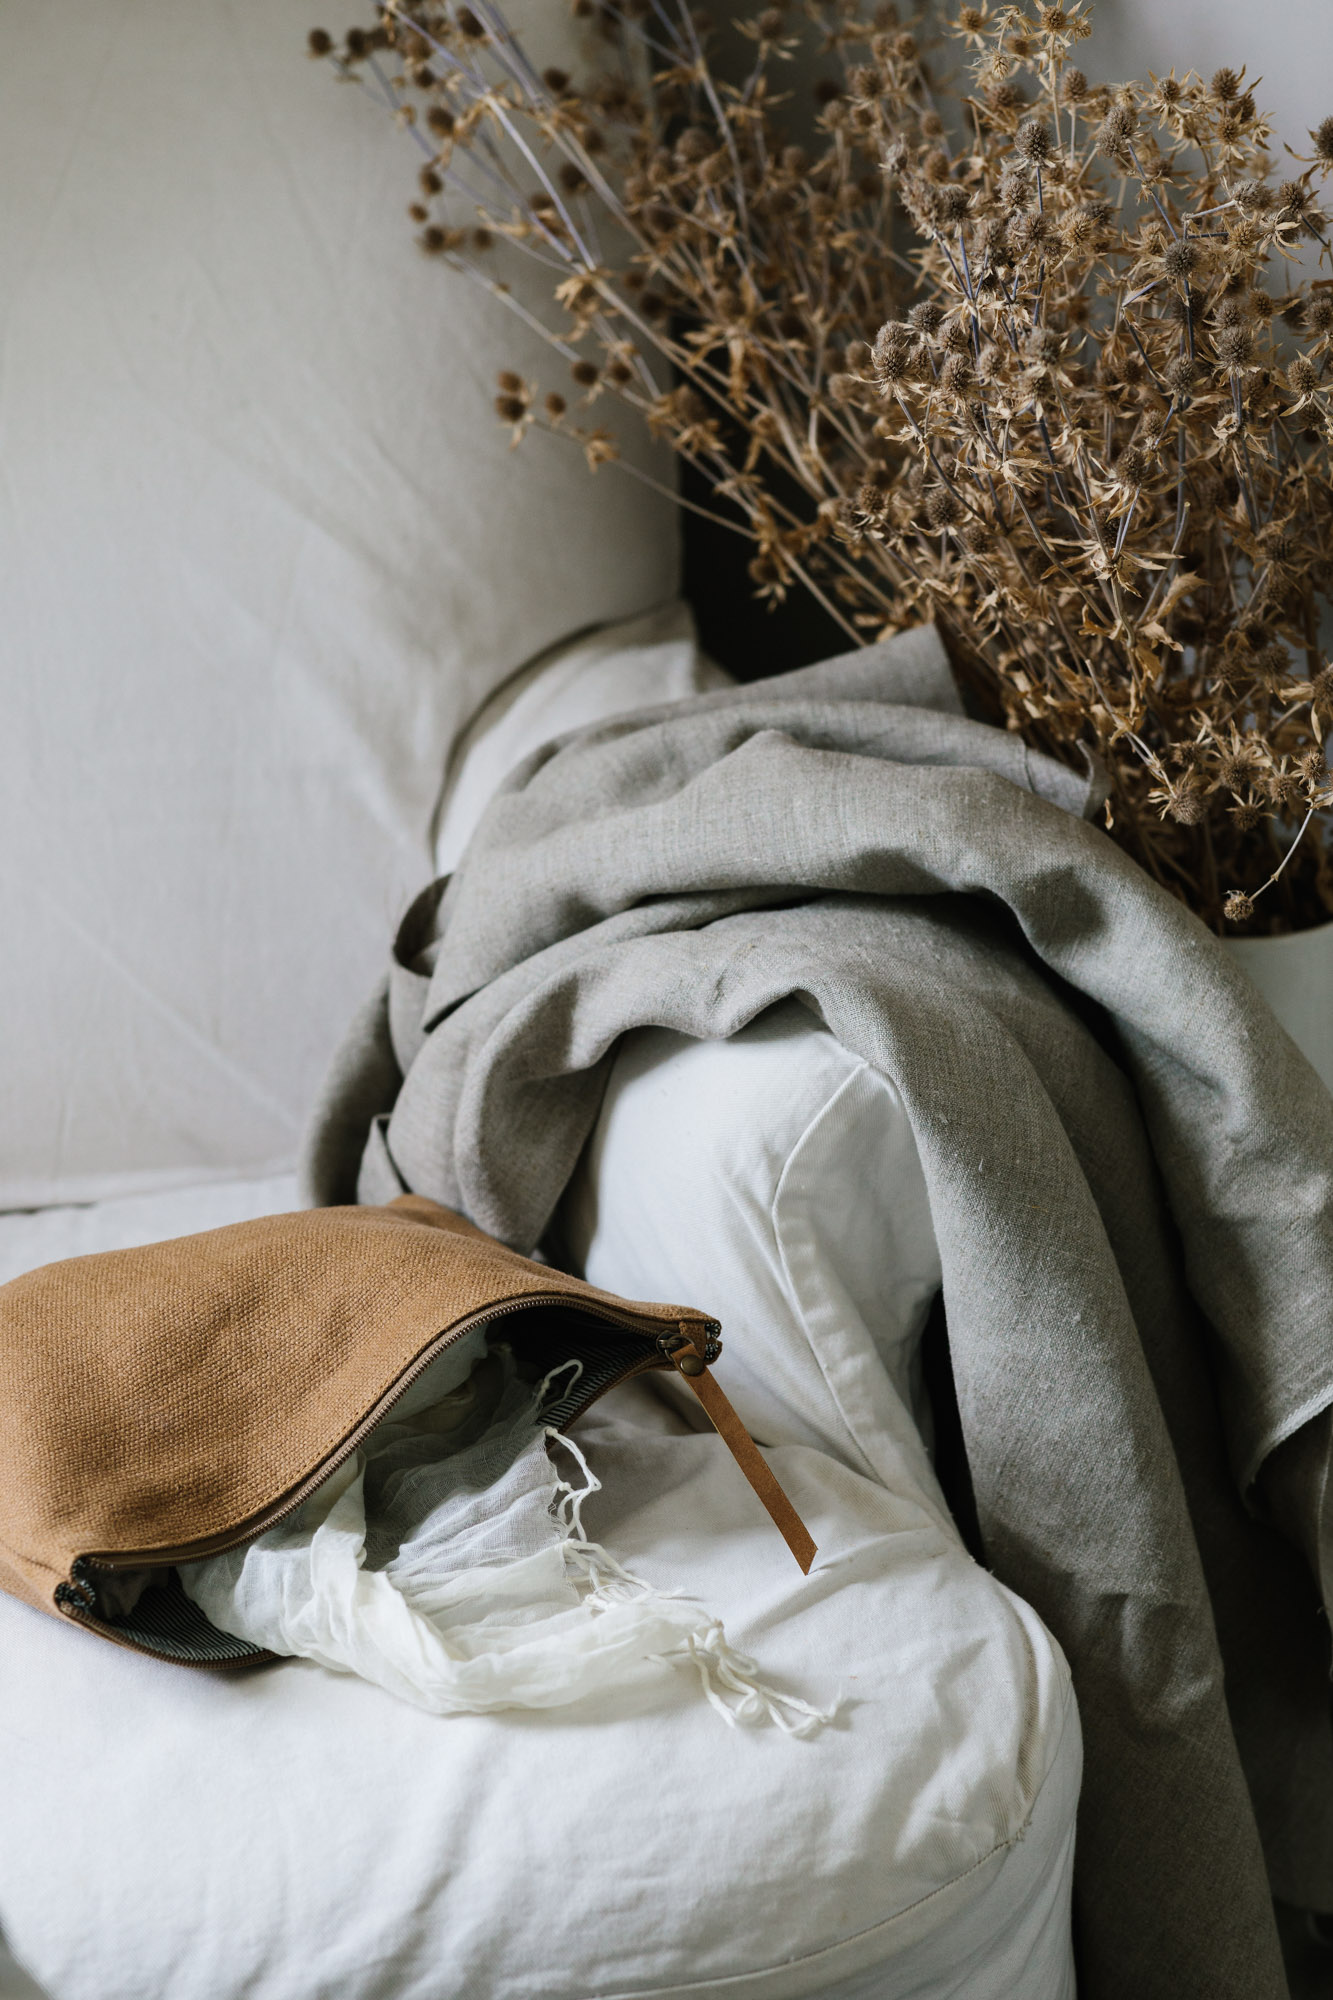 The Dharma Door, fair trade homewares. Photography by Marnie Hawson, Melbourne purpose-driven photographer and styled by Inside Story at The White House, Daylesford.